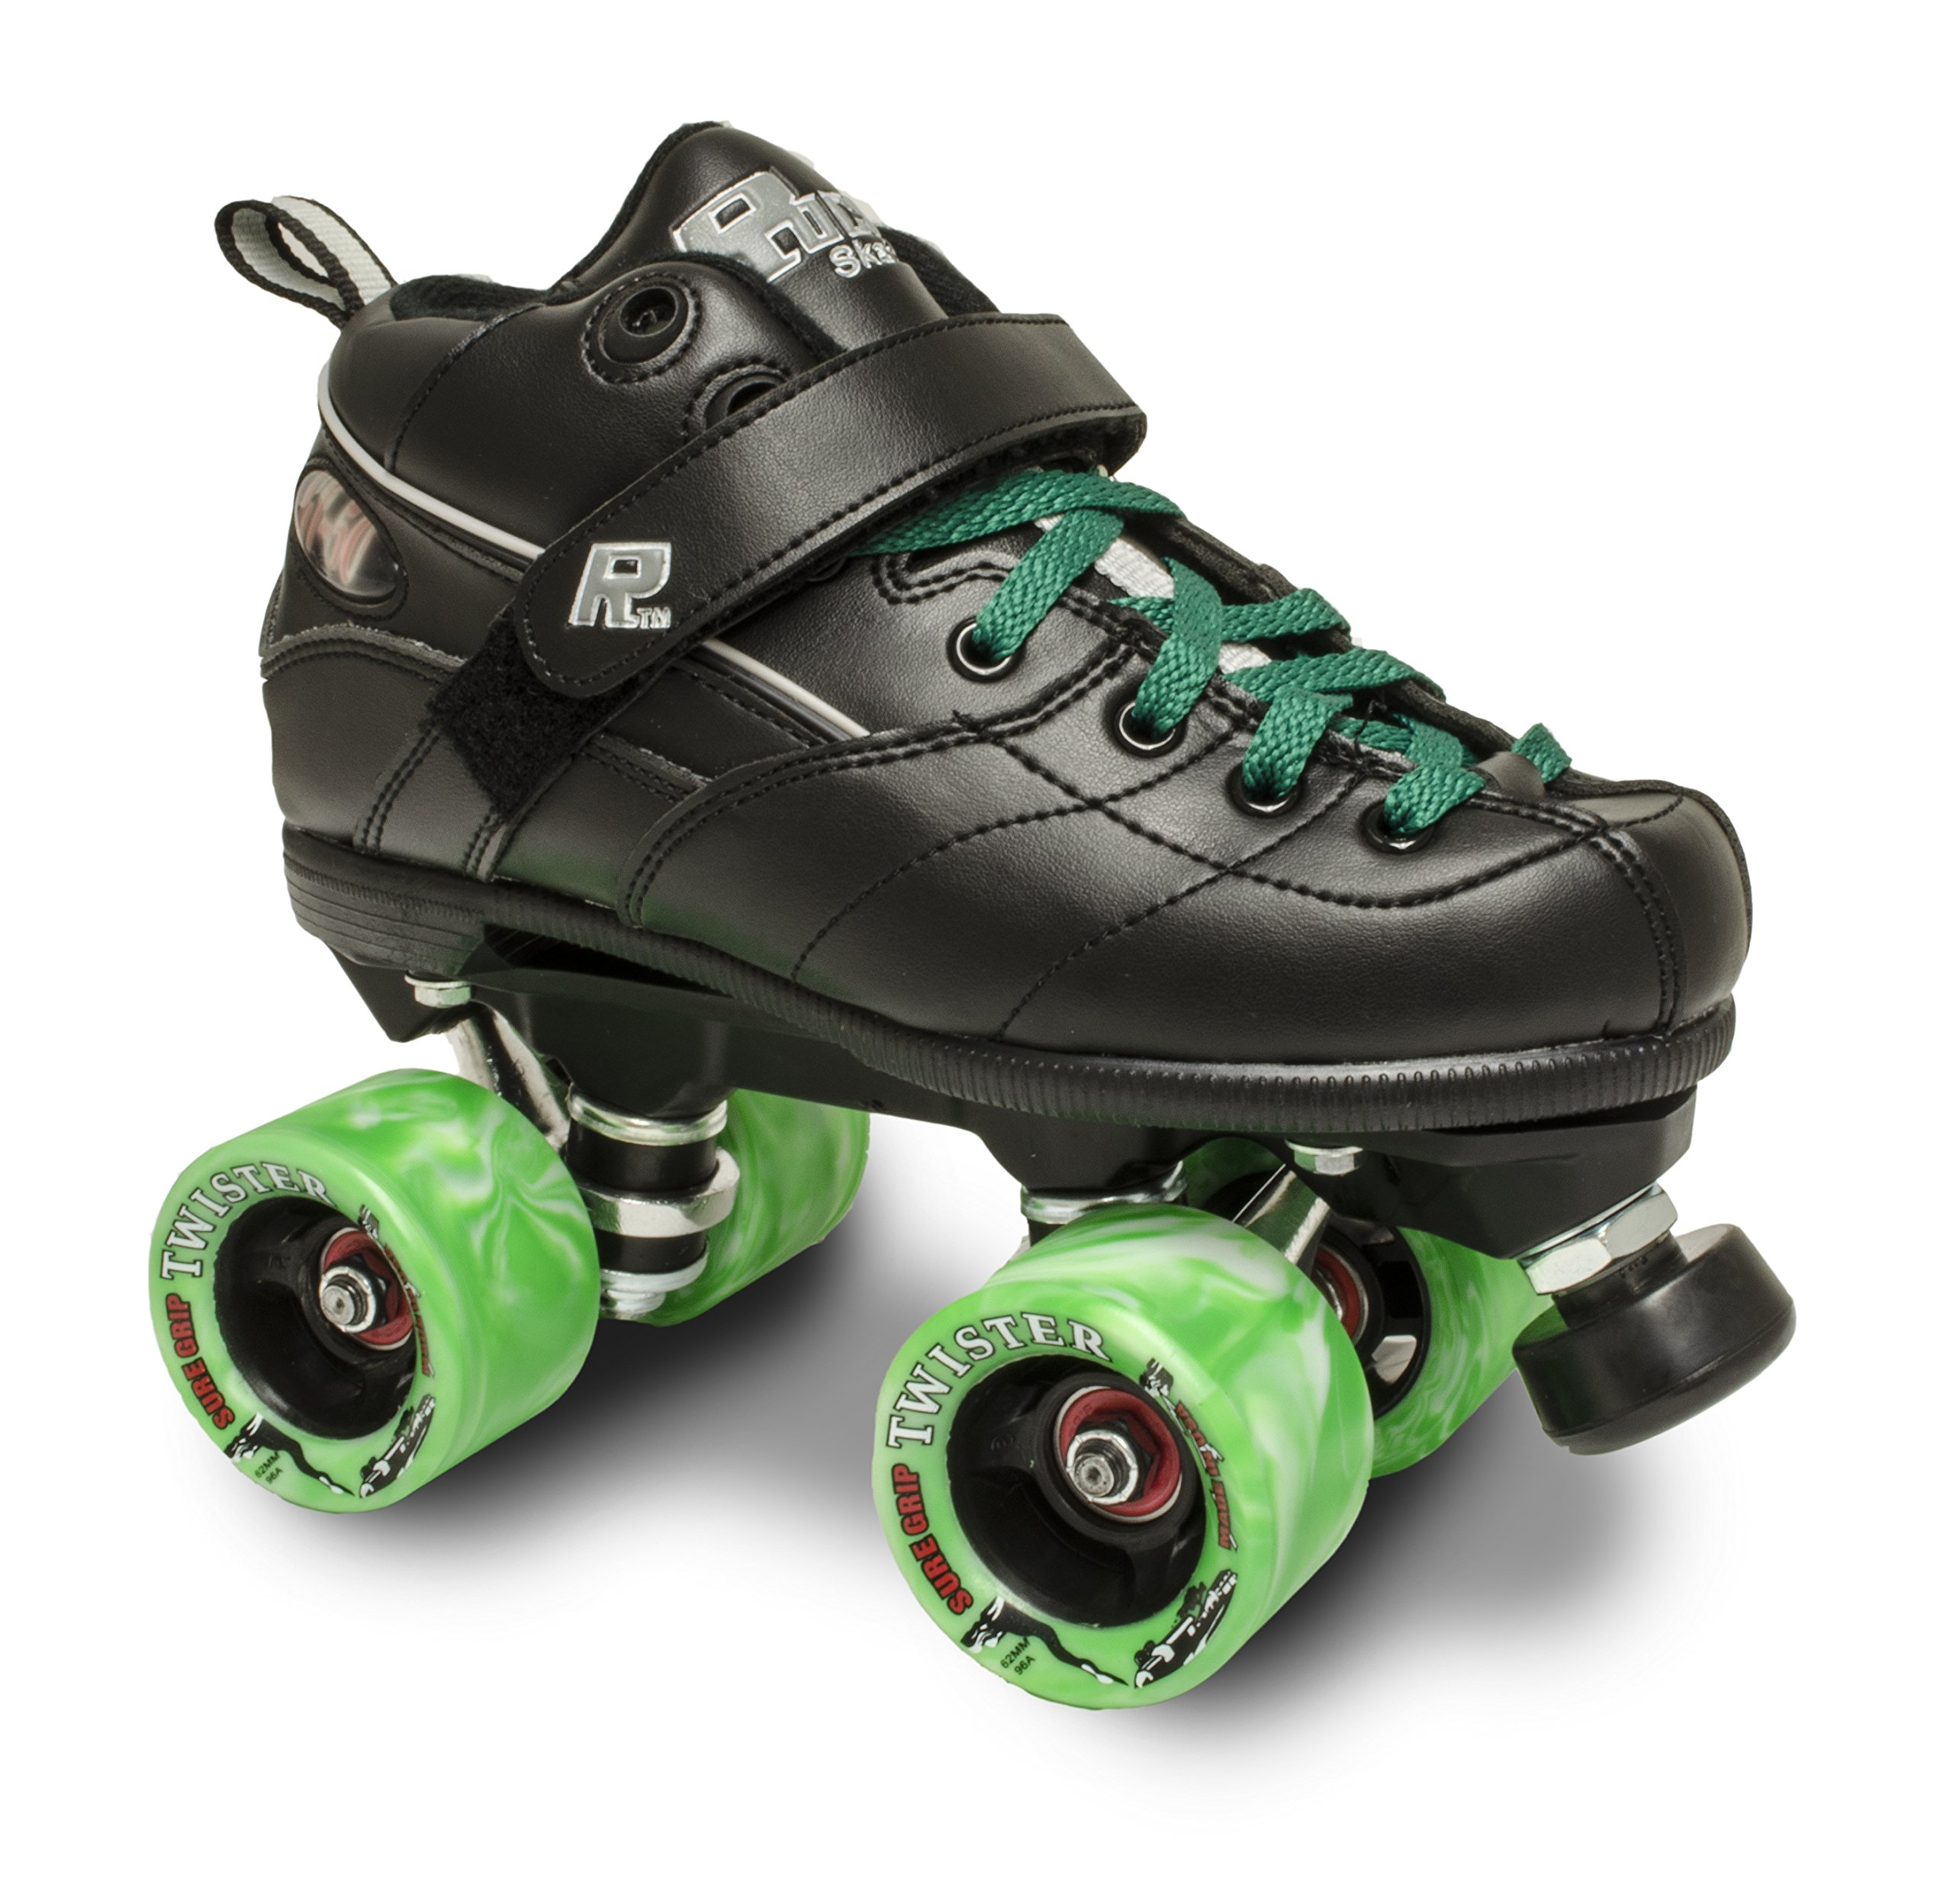 Sure-Grip ROCK GT50 TWISTER ROLLER SKATES W/GREEN TWISTER ANG GREEN LACE SIZE 13 by Sure-Grip